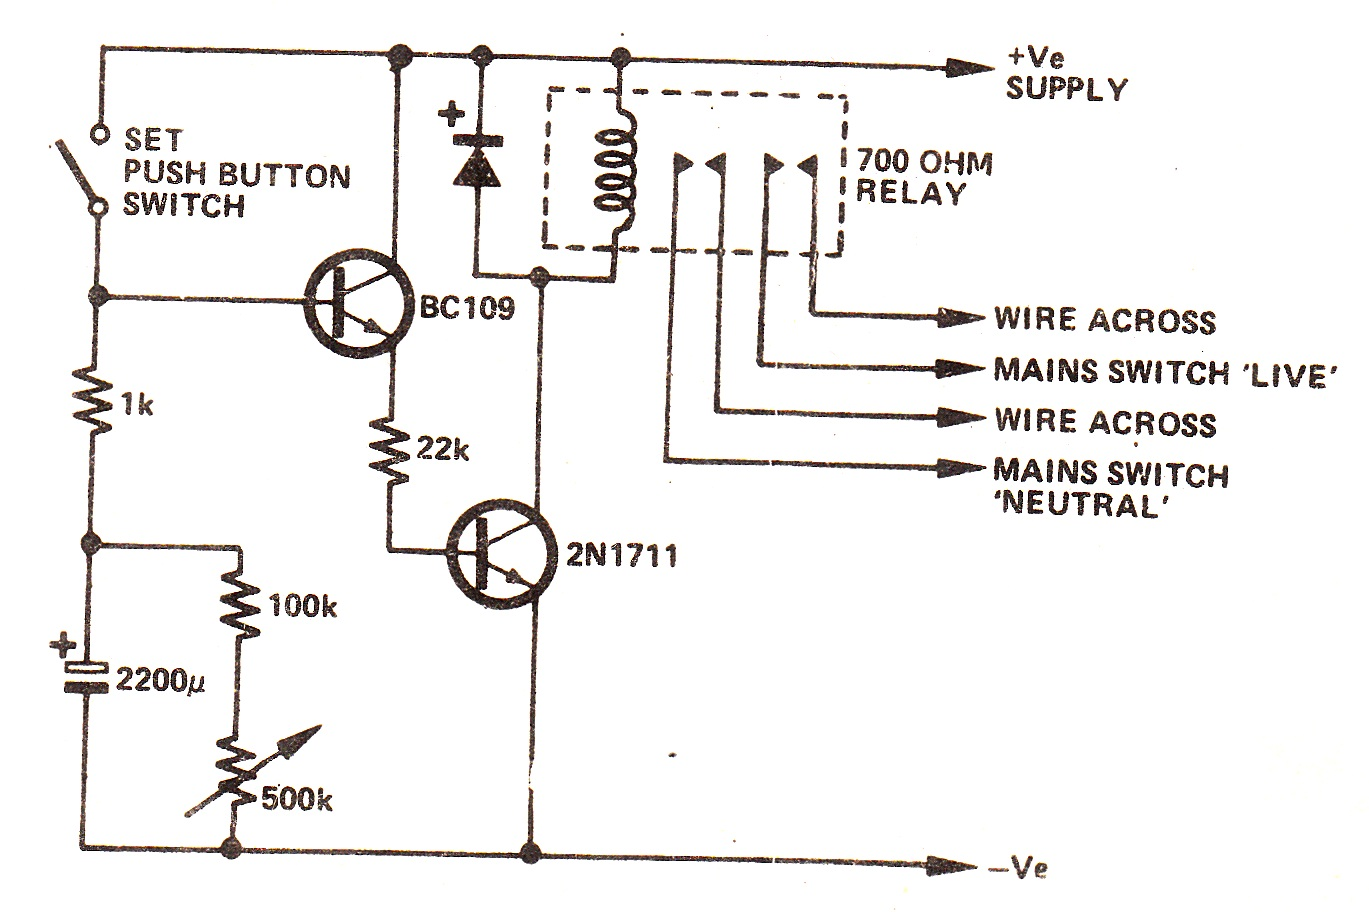 hight resolution of adjustable timer circuit diagram with relay output